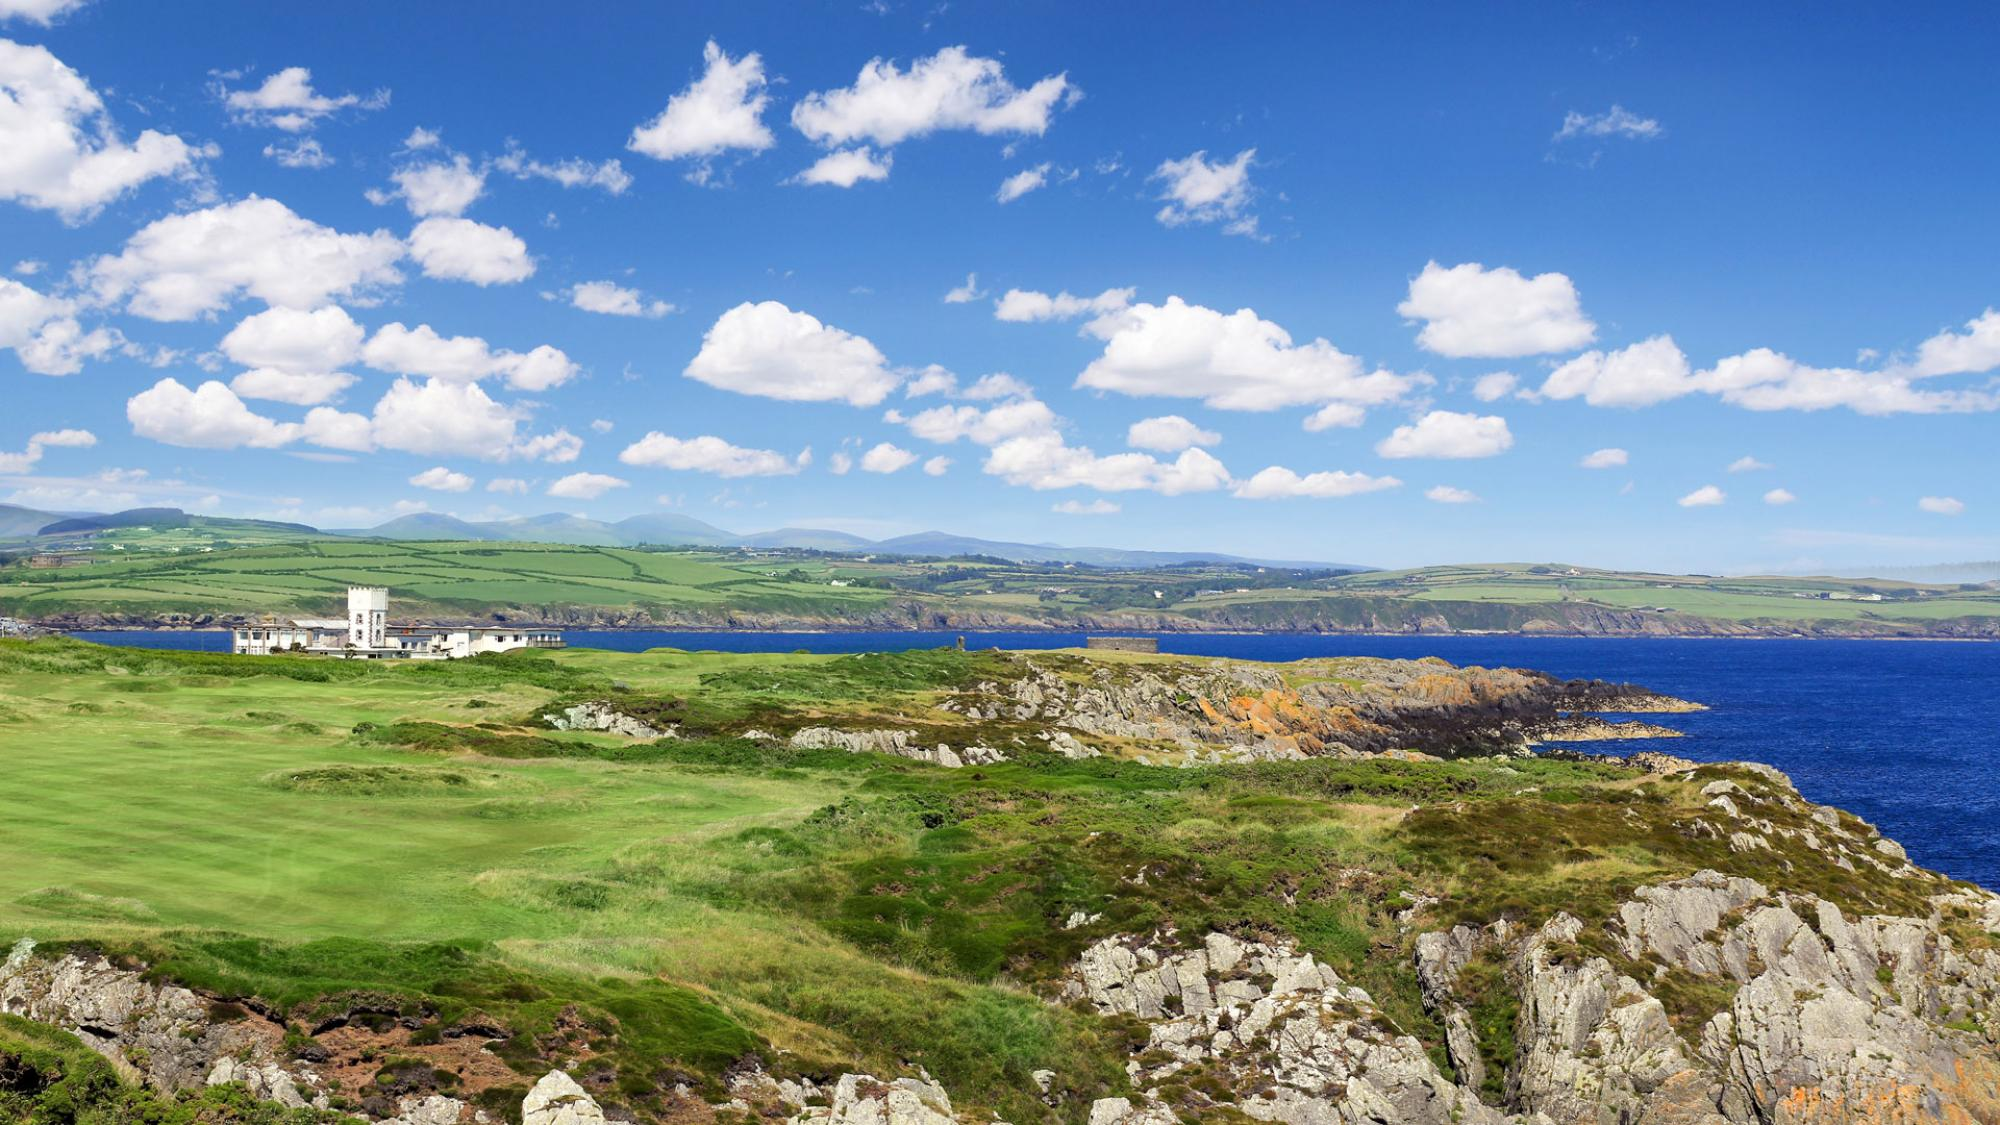 Castletown Golf Links provides some of the premiere golf course in Isle of Man